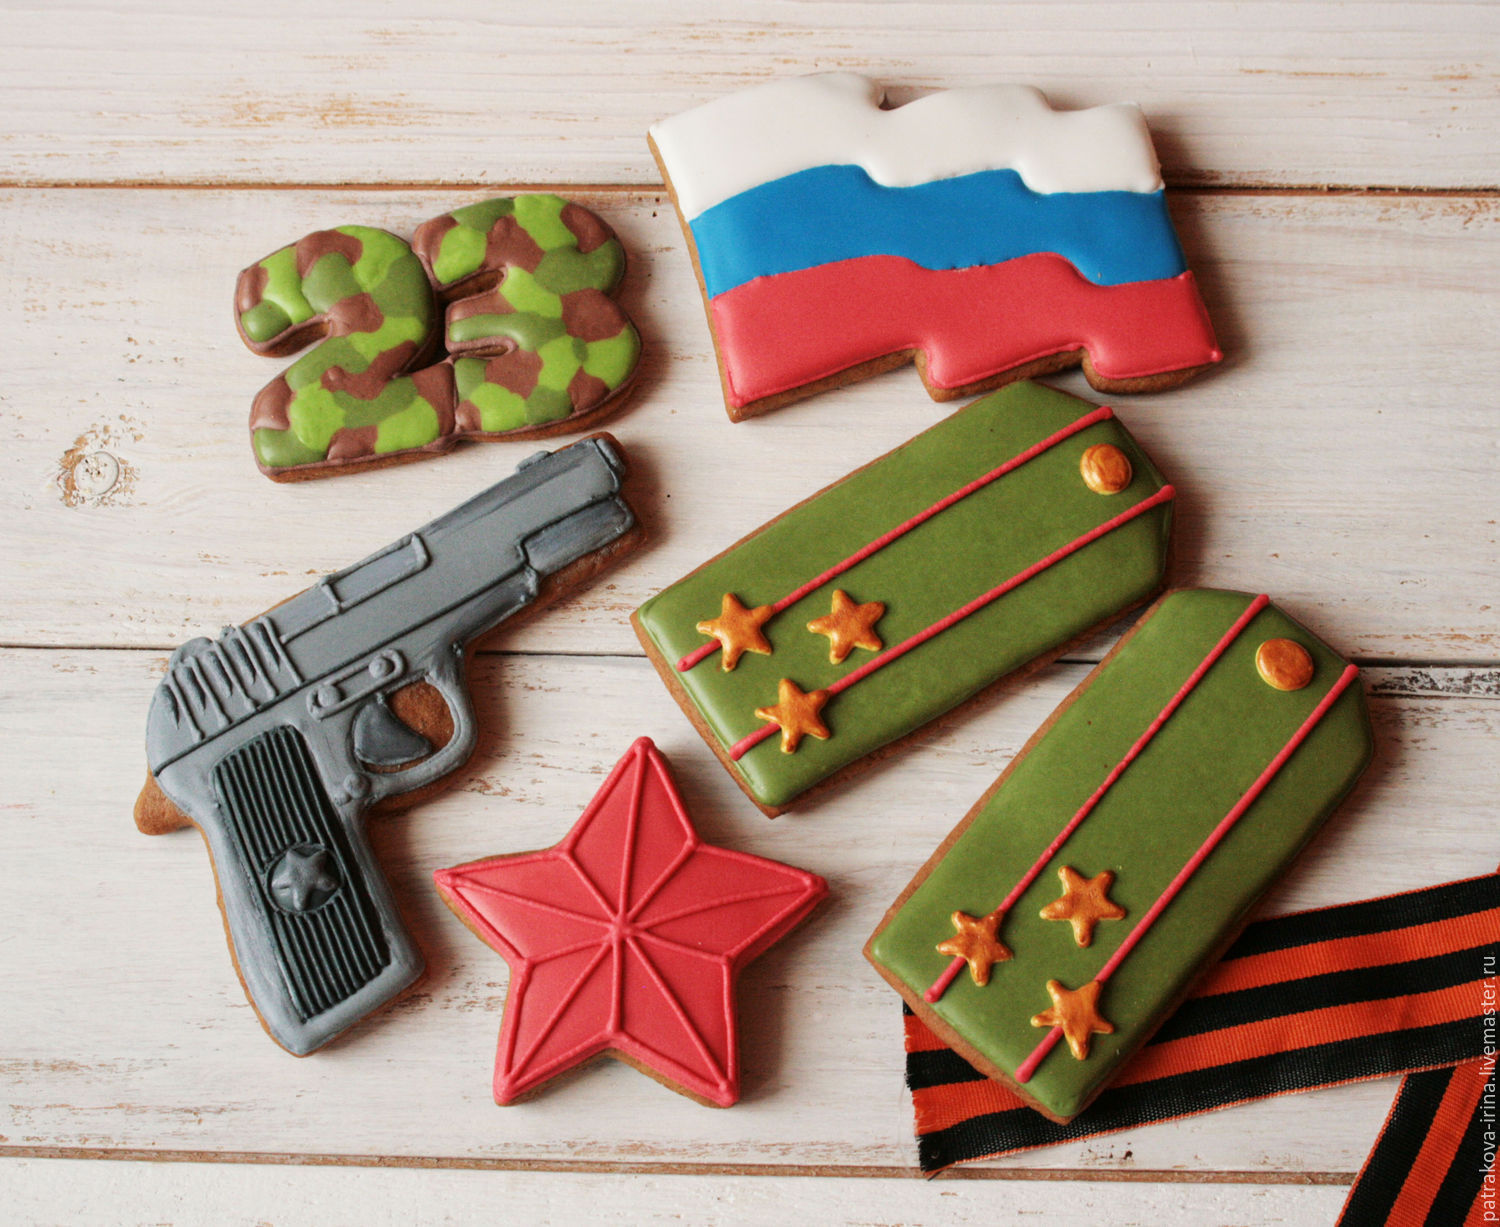 ❶Расписные пряники на 23 февраля|Песни переделки с 23 февраля|43 Best Guy Cookies images | Decorated cookies, Cupcake cookies, Frosted cookies|Check out these super cute tool box cookies. Perfect for Father's day!|}